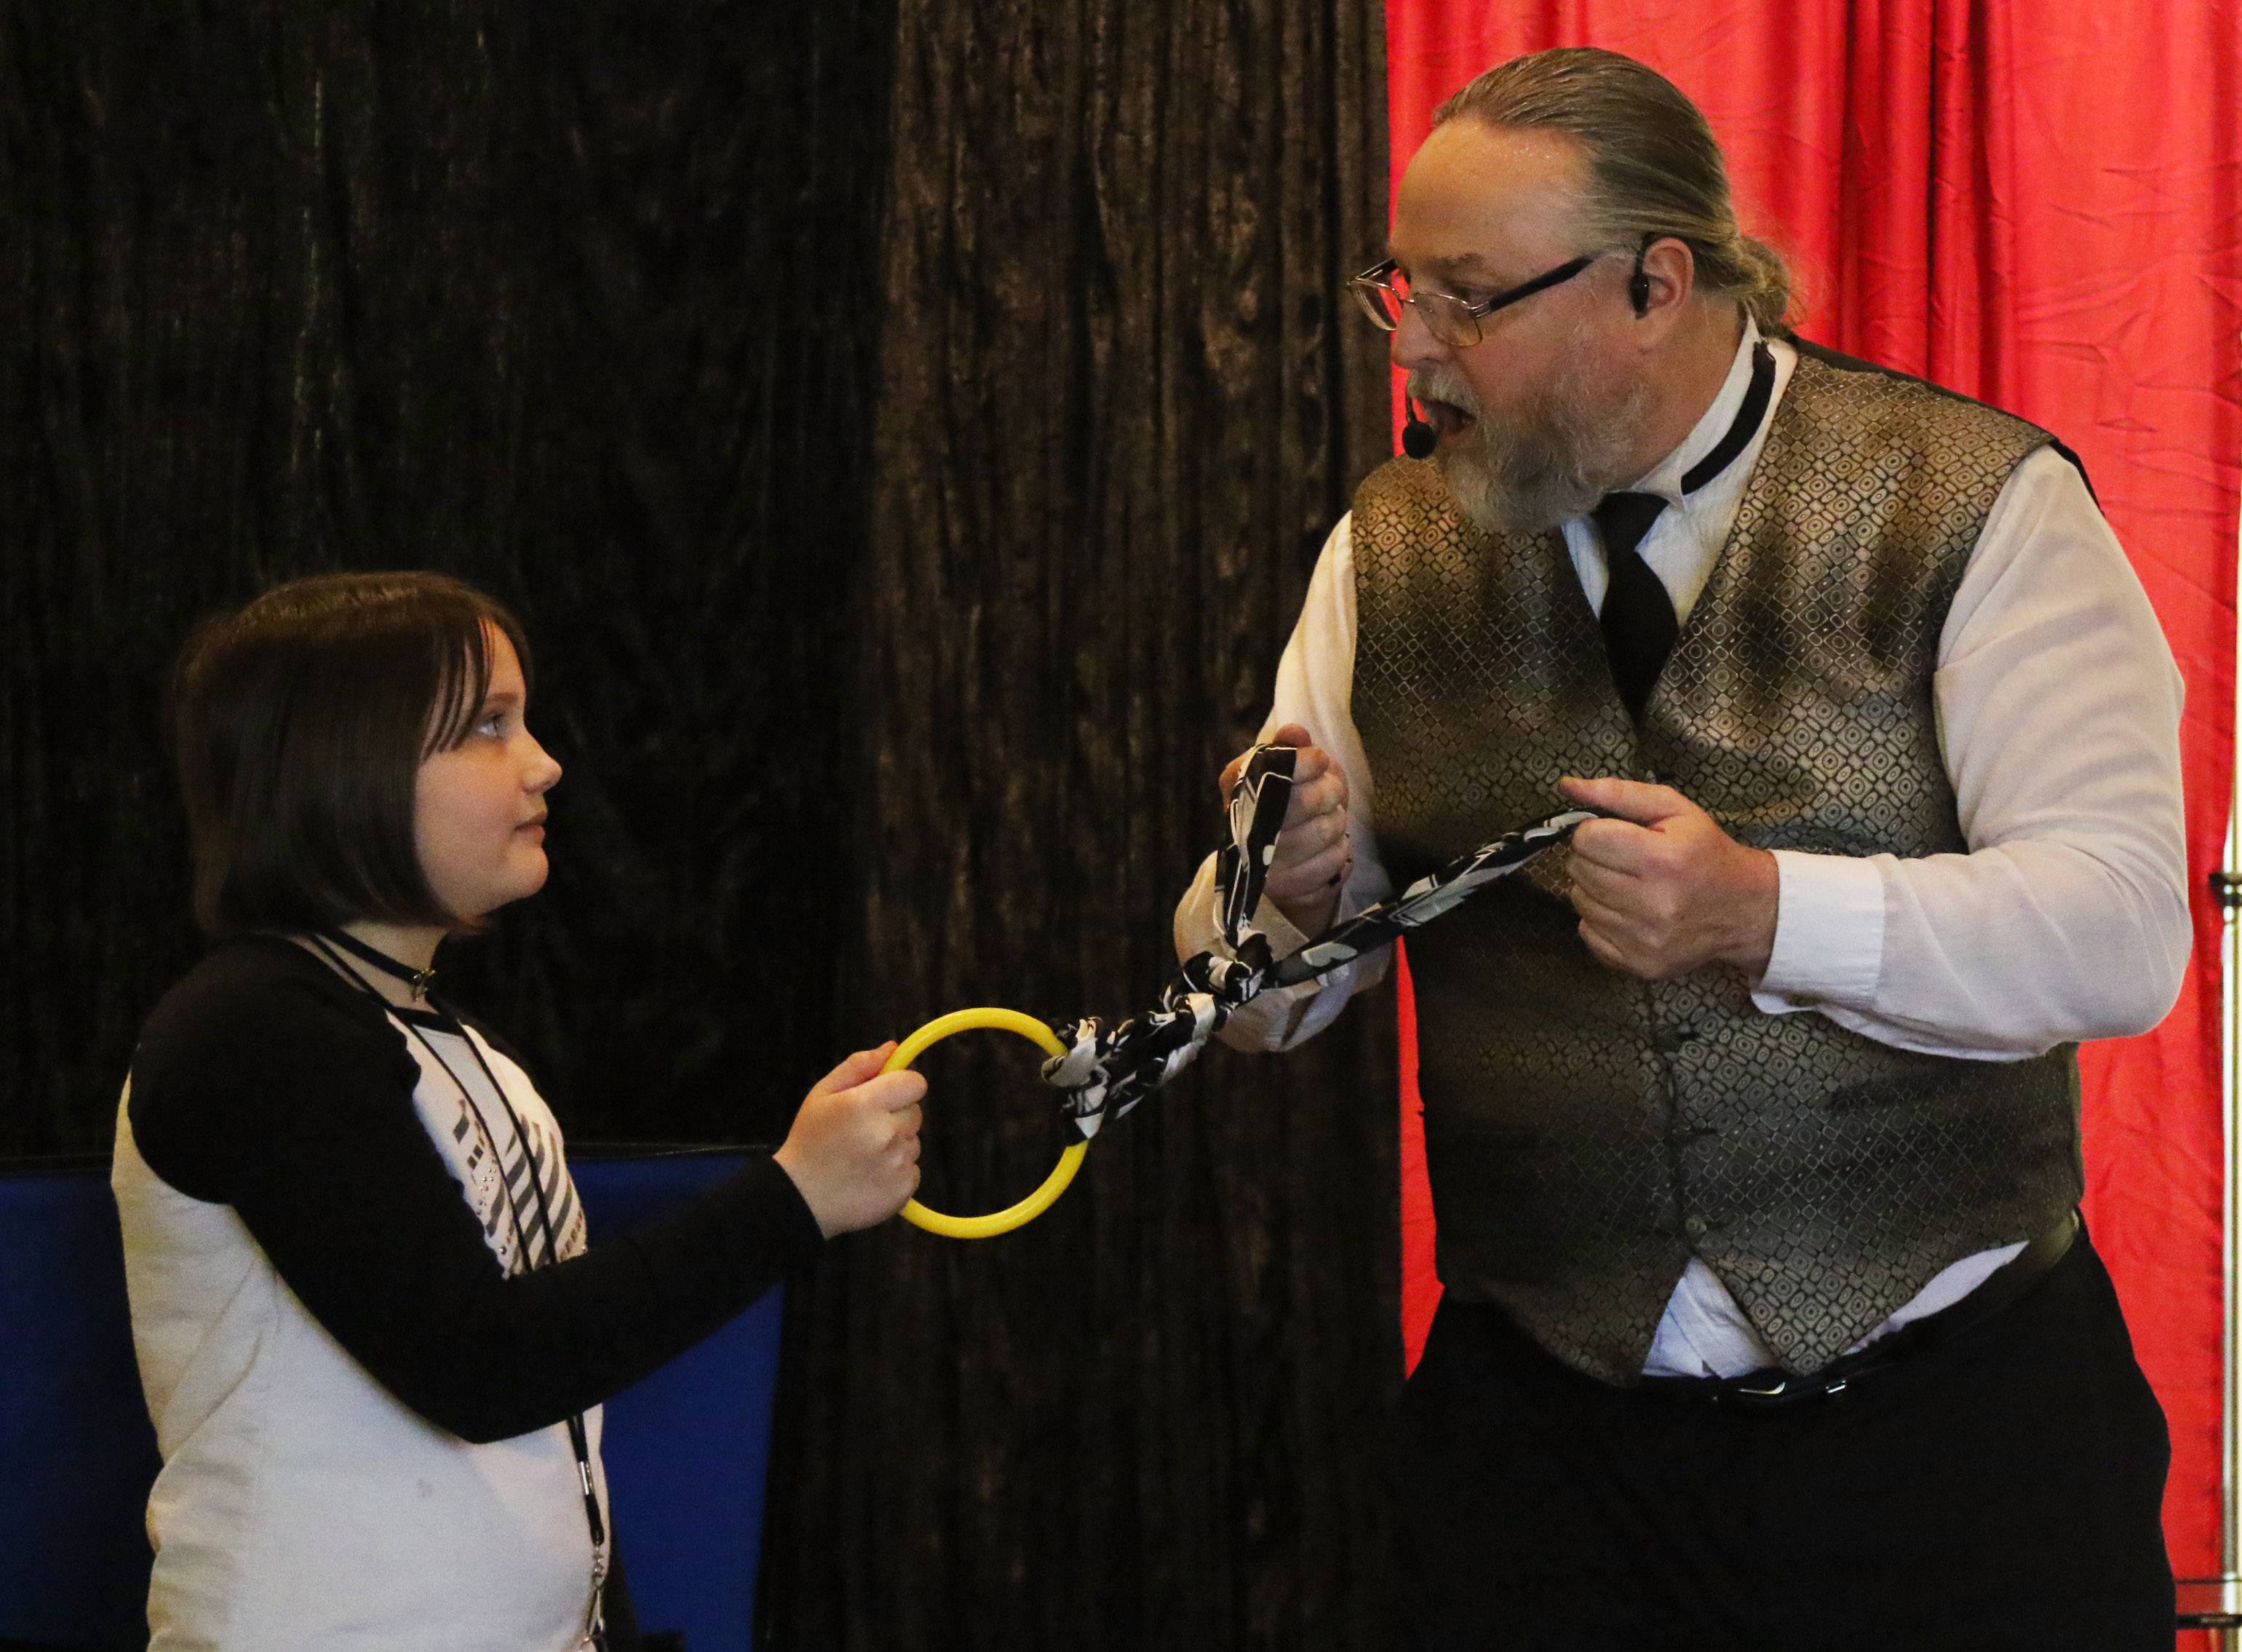 Eleven-year-old Kelsey Nelson of Port Barrington helps magician Keith Cobb with a trick Monday at Wauconda Area Library. More than 120 patrons watched Cobb's show blending magic with comedy.